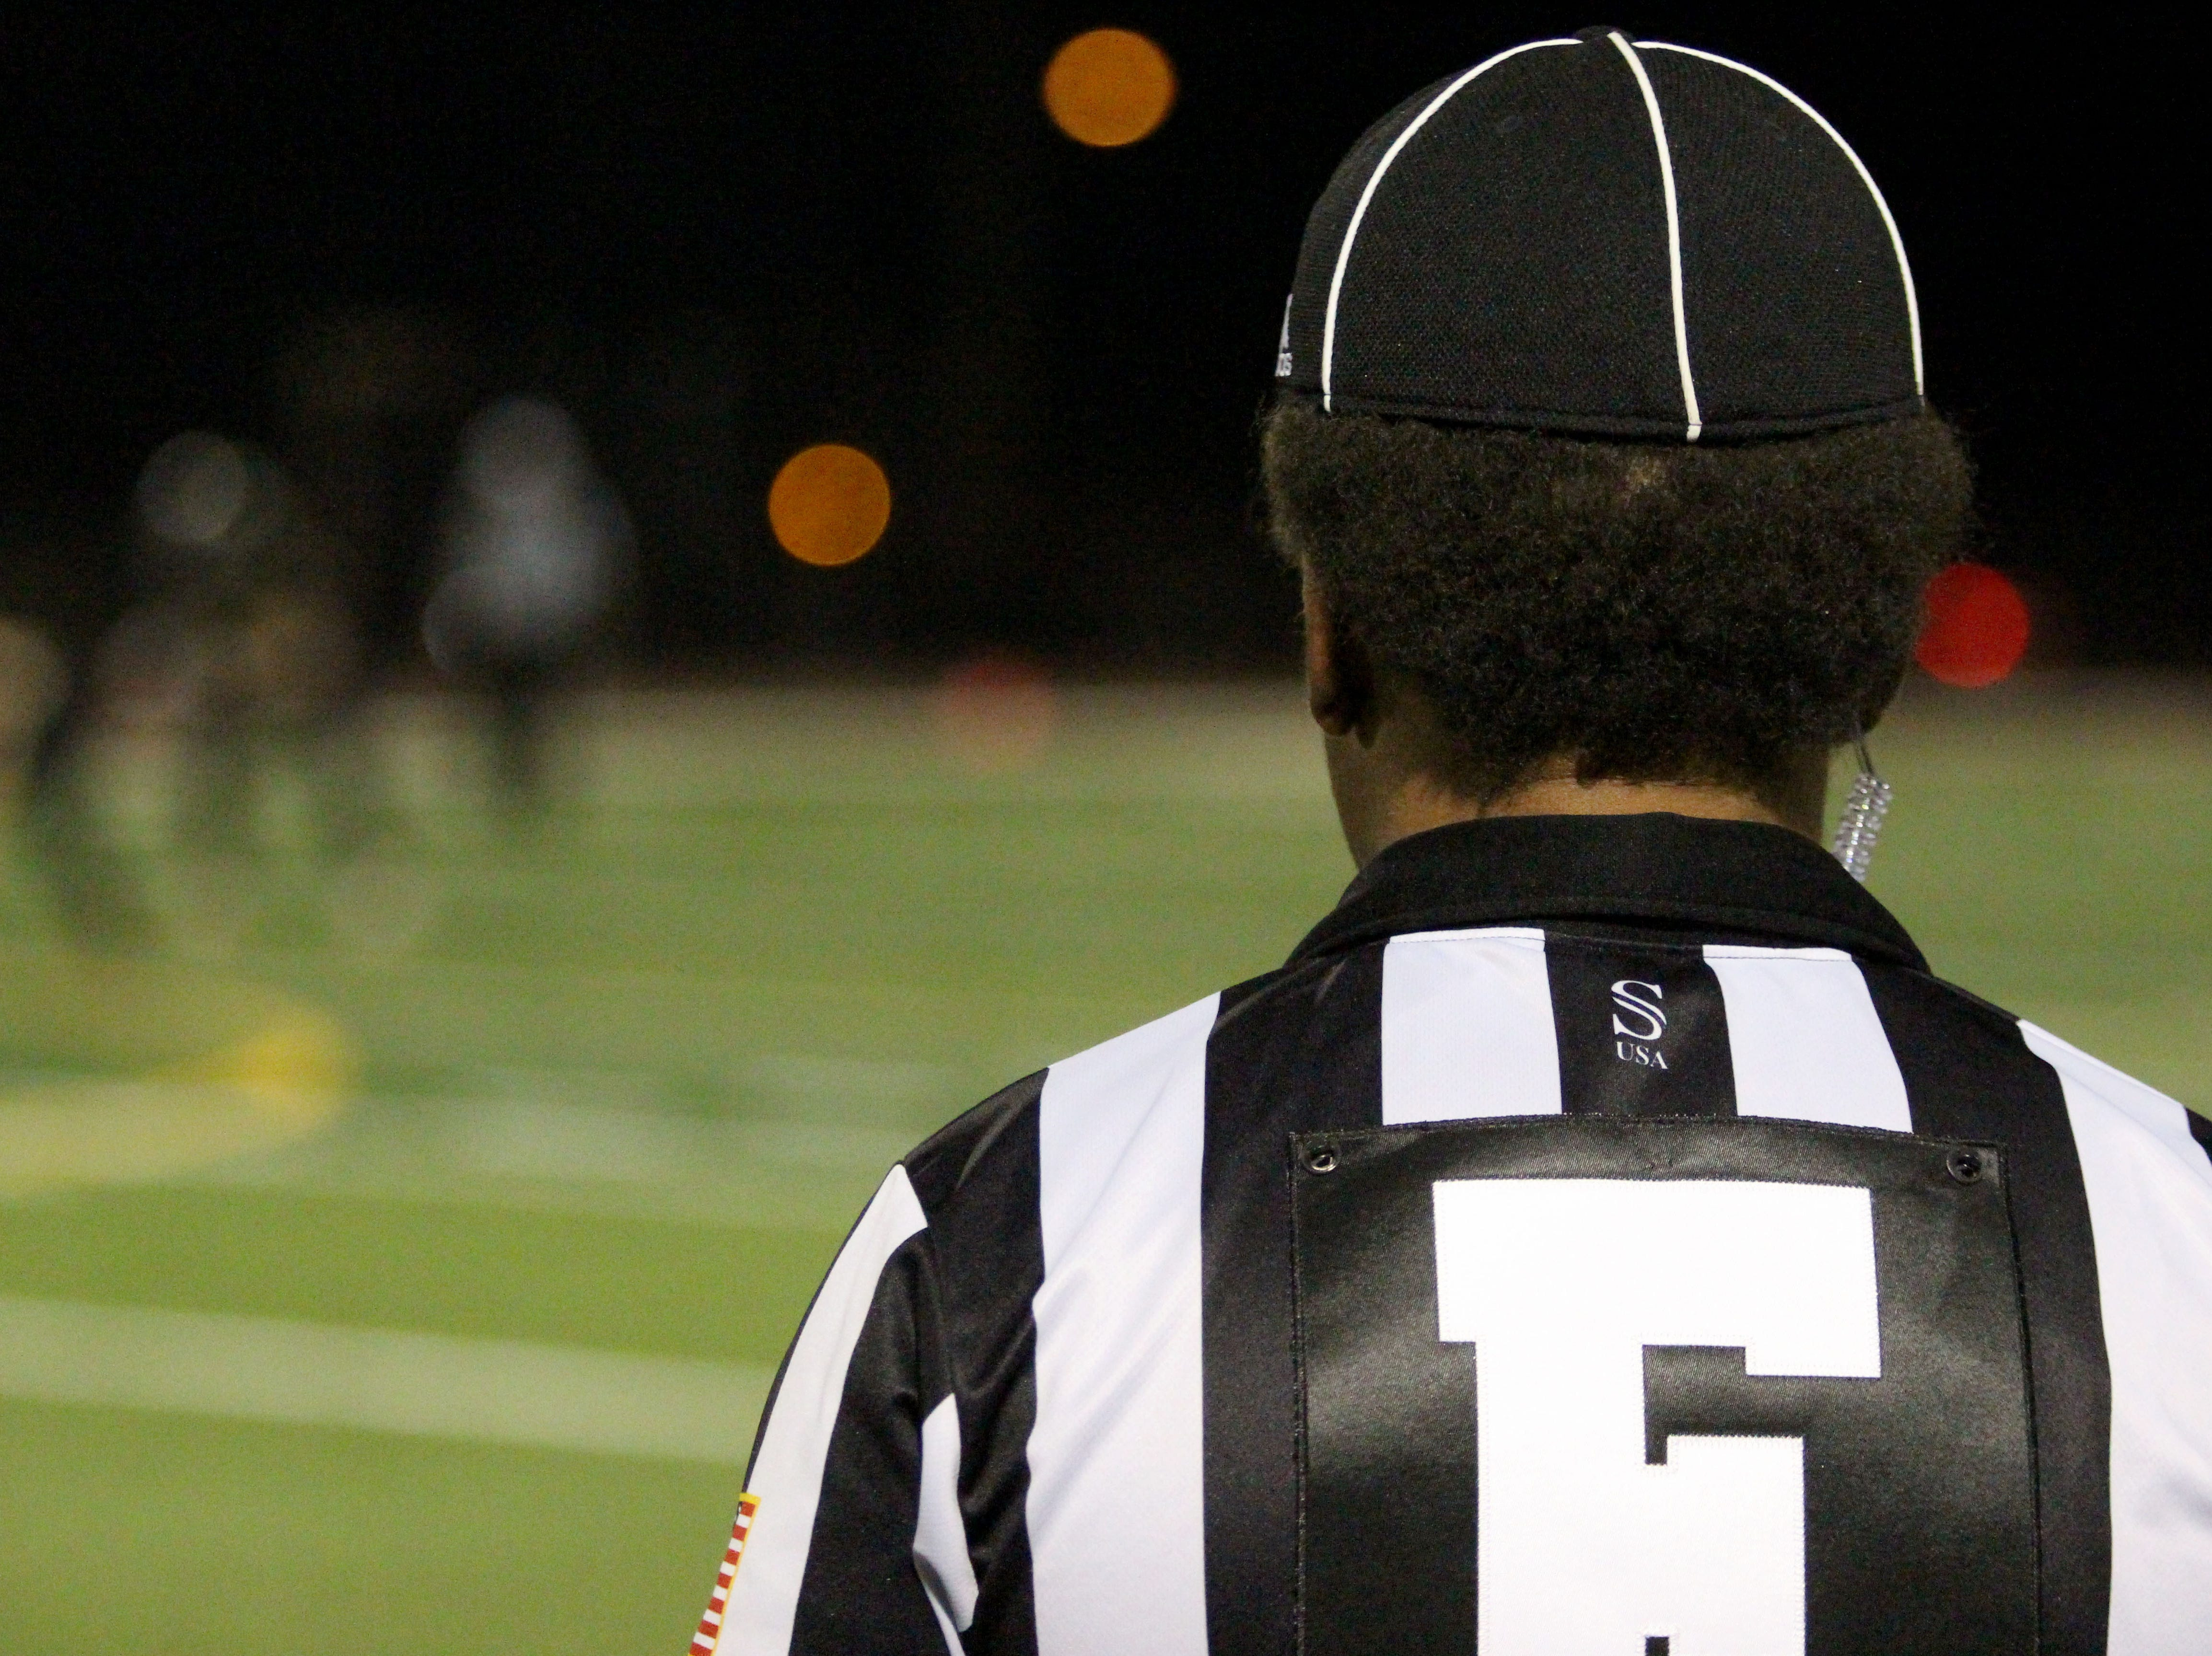 The referee watches as Desert Edge plays Saguaro on Friday night at Coronado High School on Nov. 16, 2018.